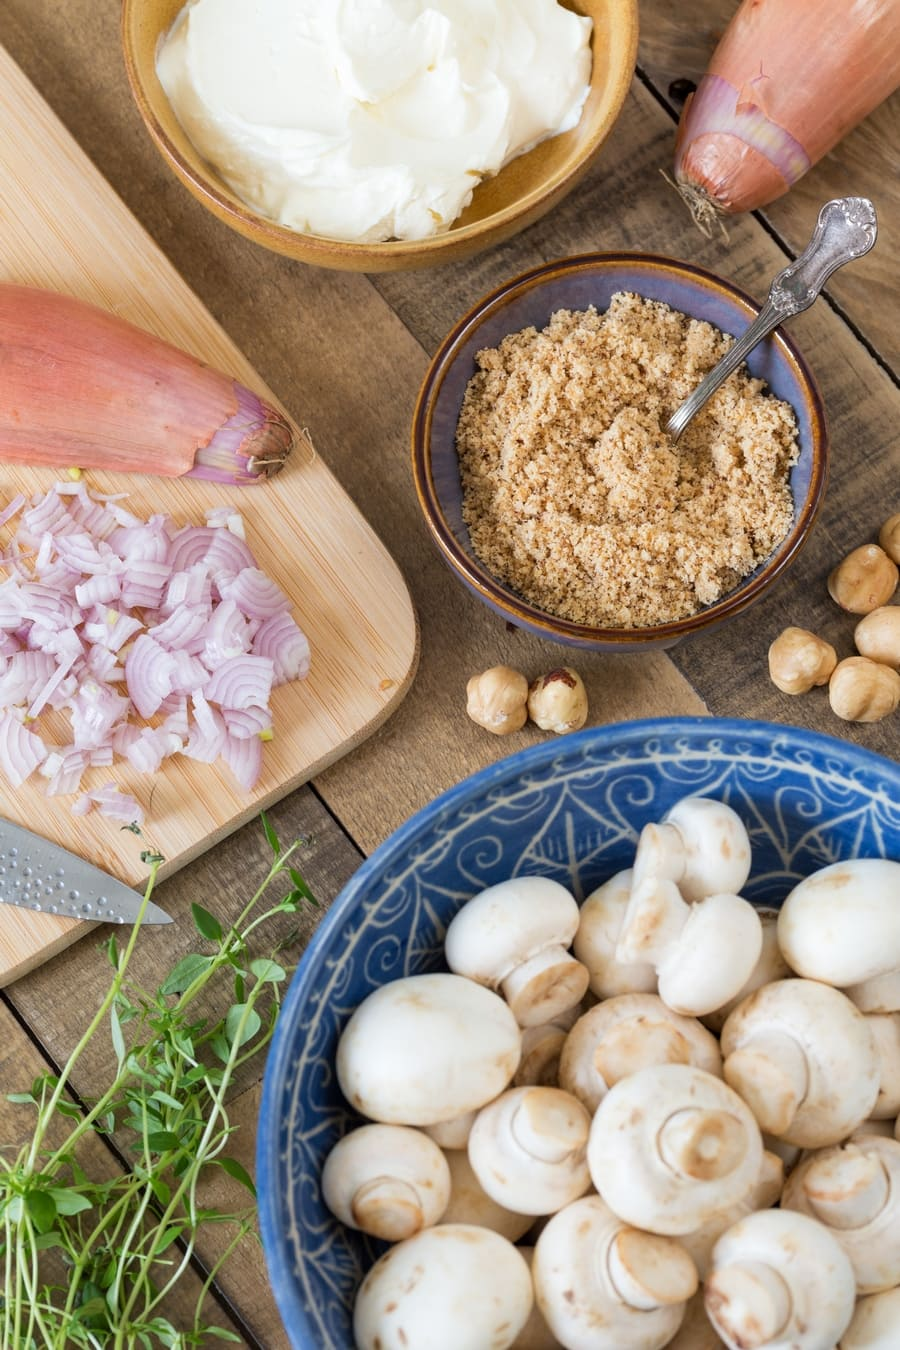 Flatlay image of ingredients needed for the preparation of stuffed mushroom caps.